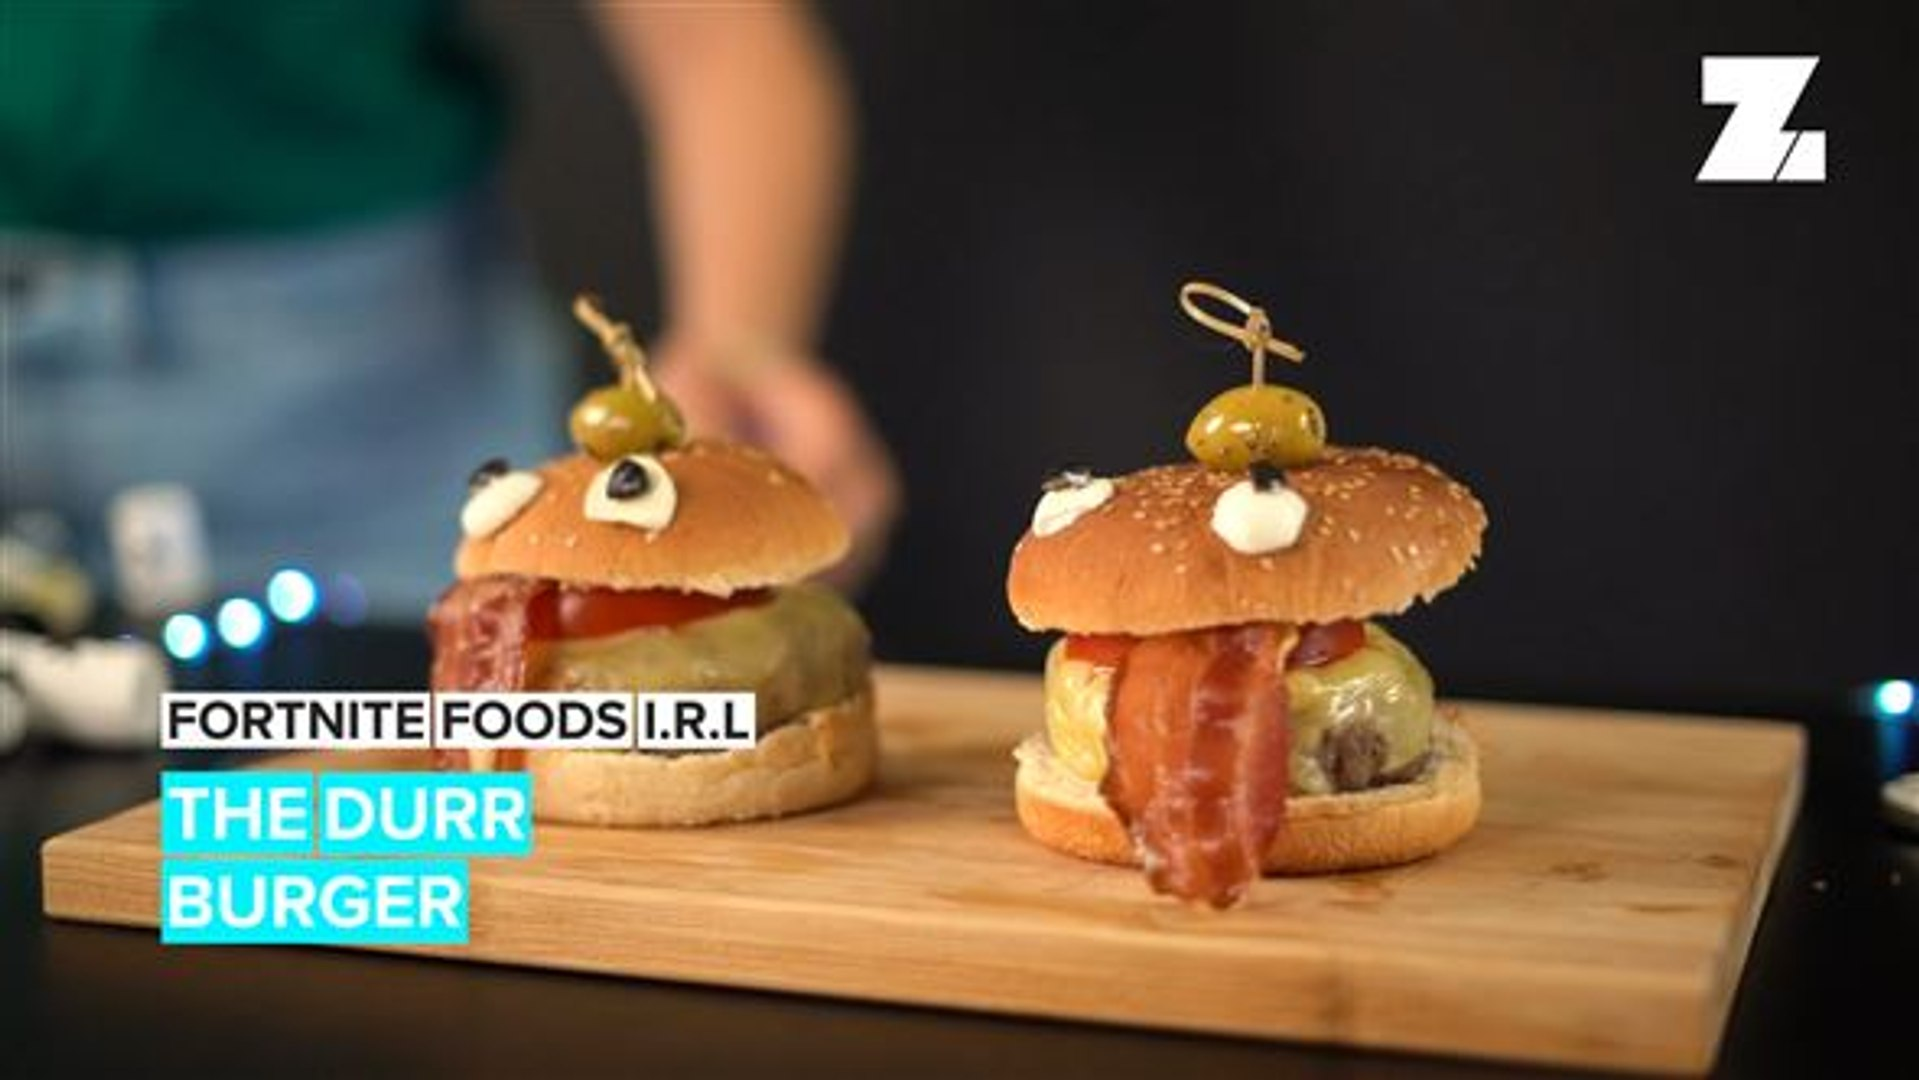 Fortnite Foods I R L The Infamous Durr Burger Video Dailymotion See more of fortnite burger a burger kingben on facebook. fortnite foods i r l the infamous